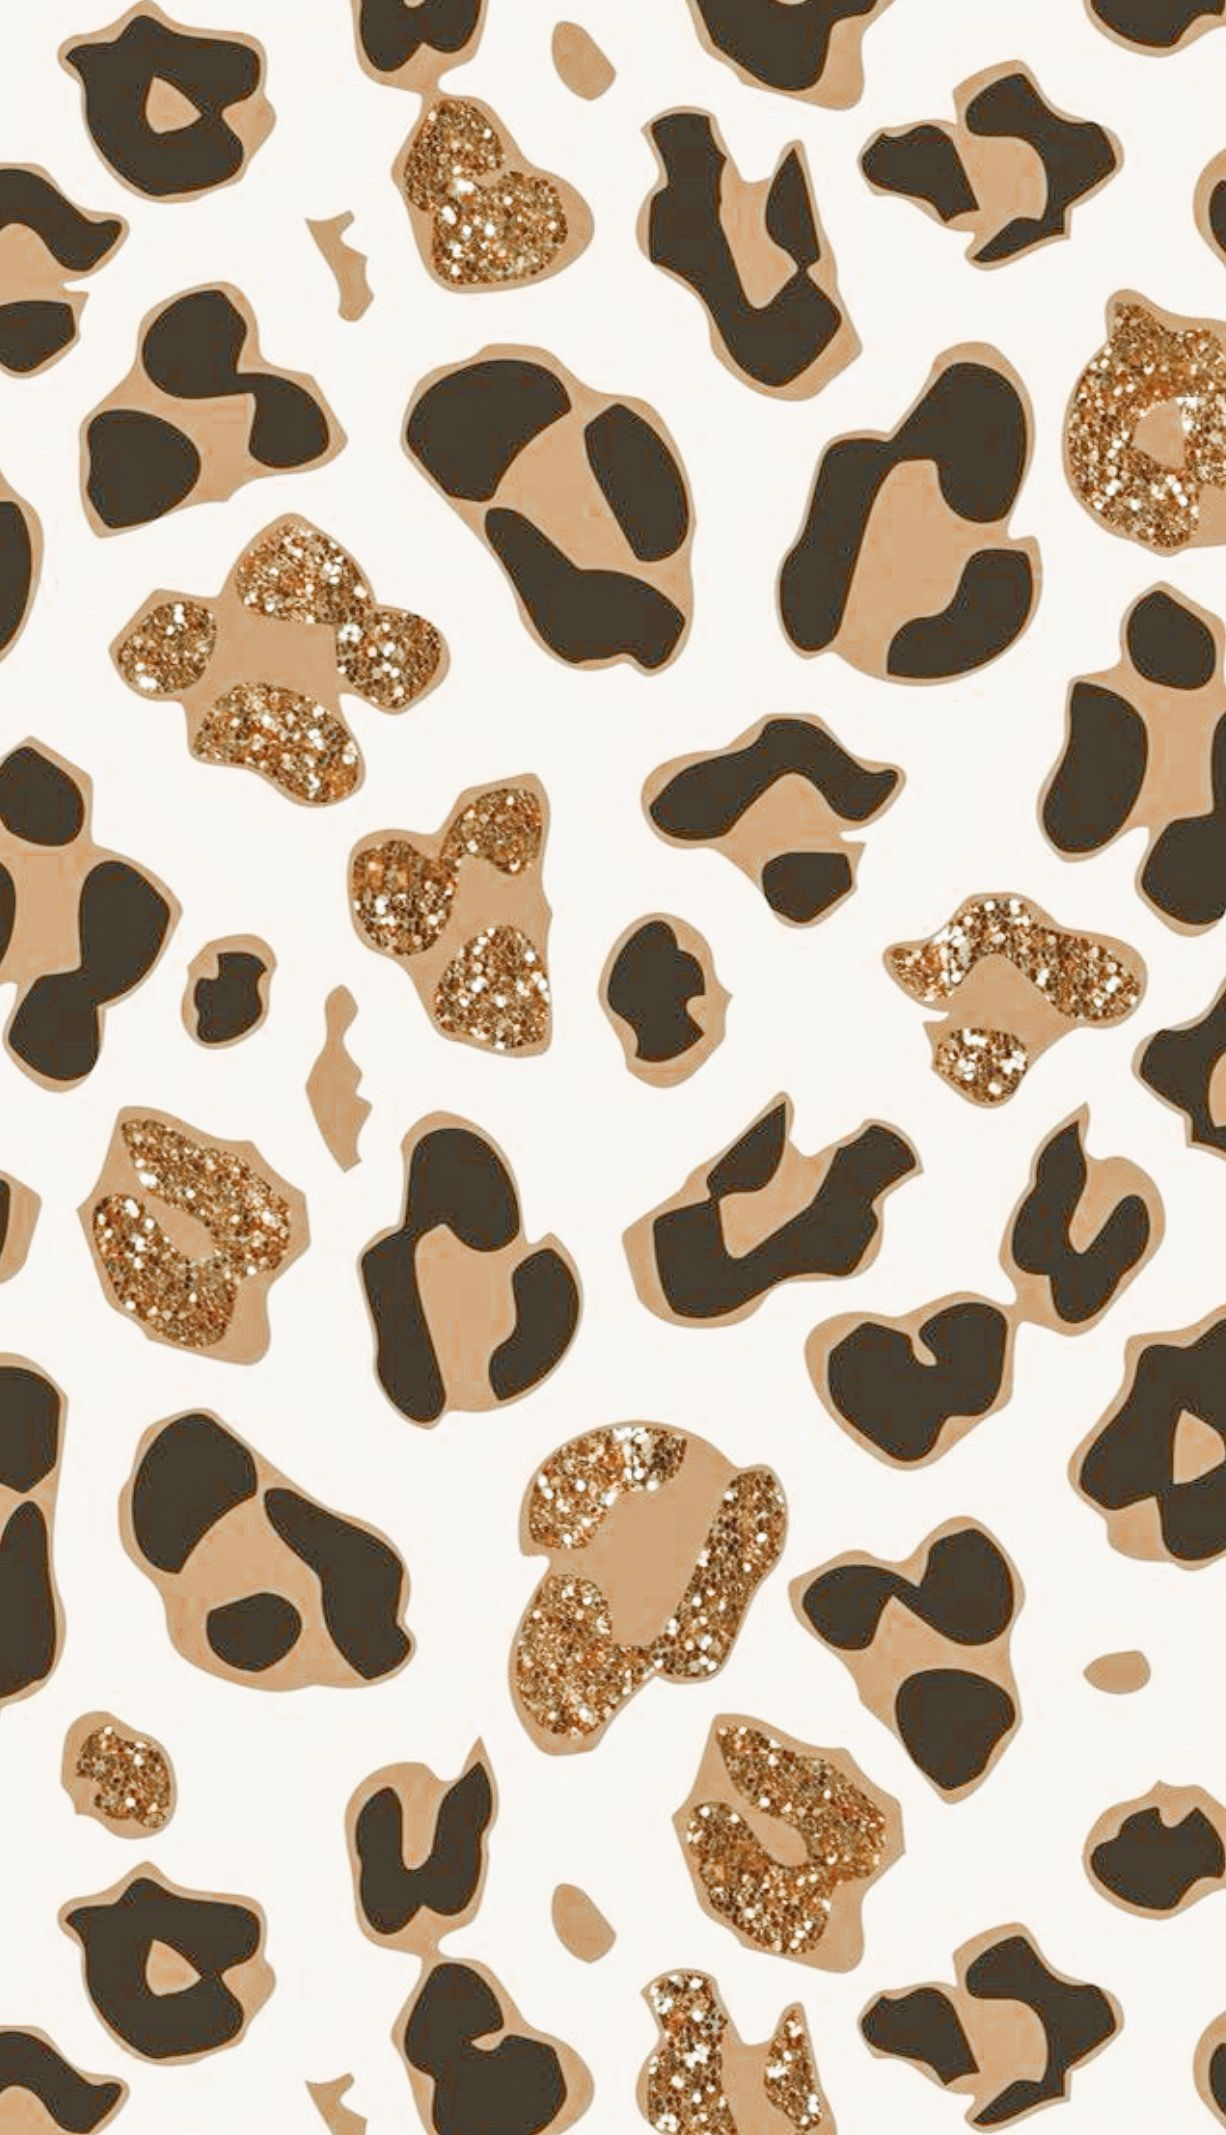 Pin By Sara Salaty On Computer In 2020 Animal Print Wallpaper Cheetah Print Wallpaper Leopard Print Wallpaper